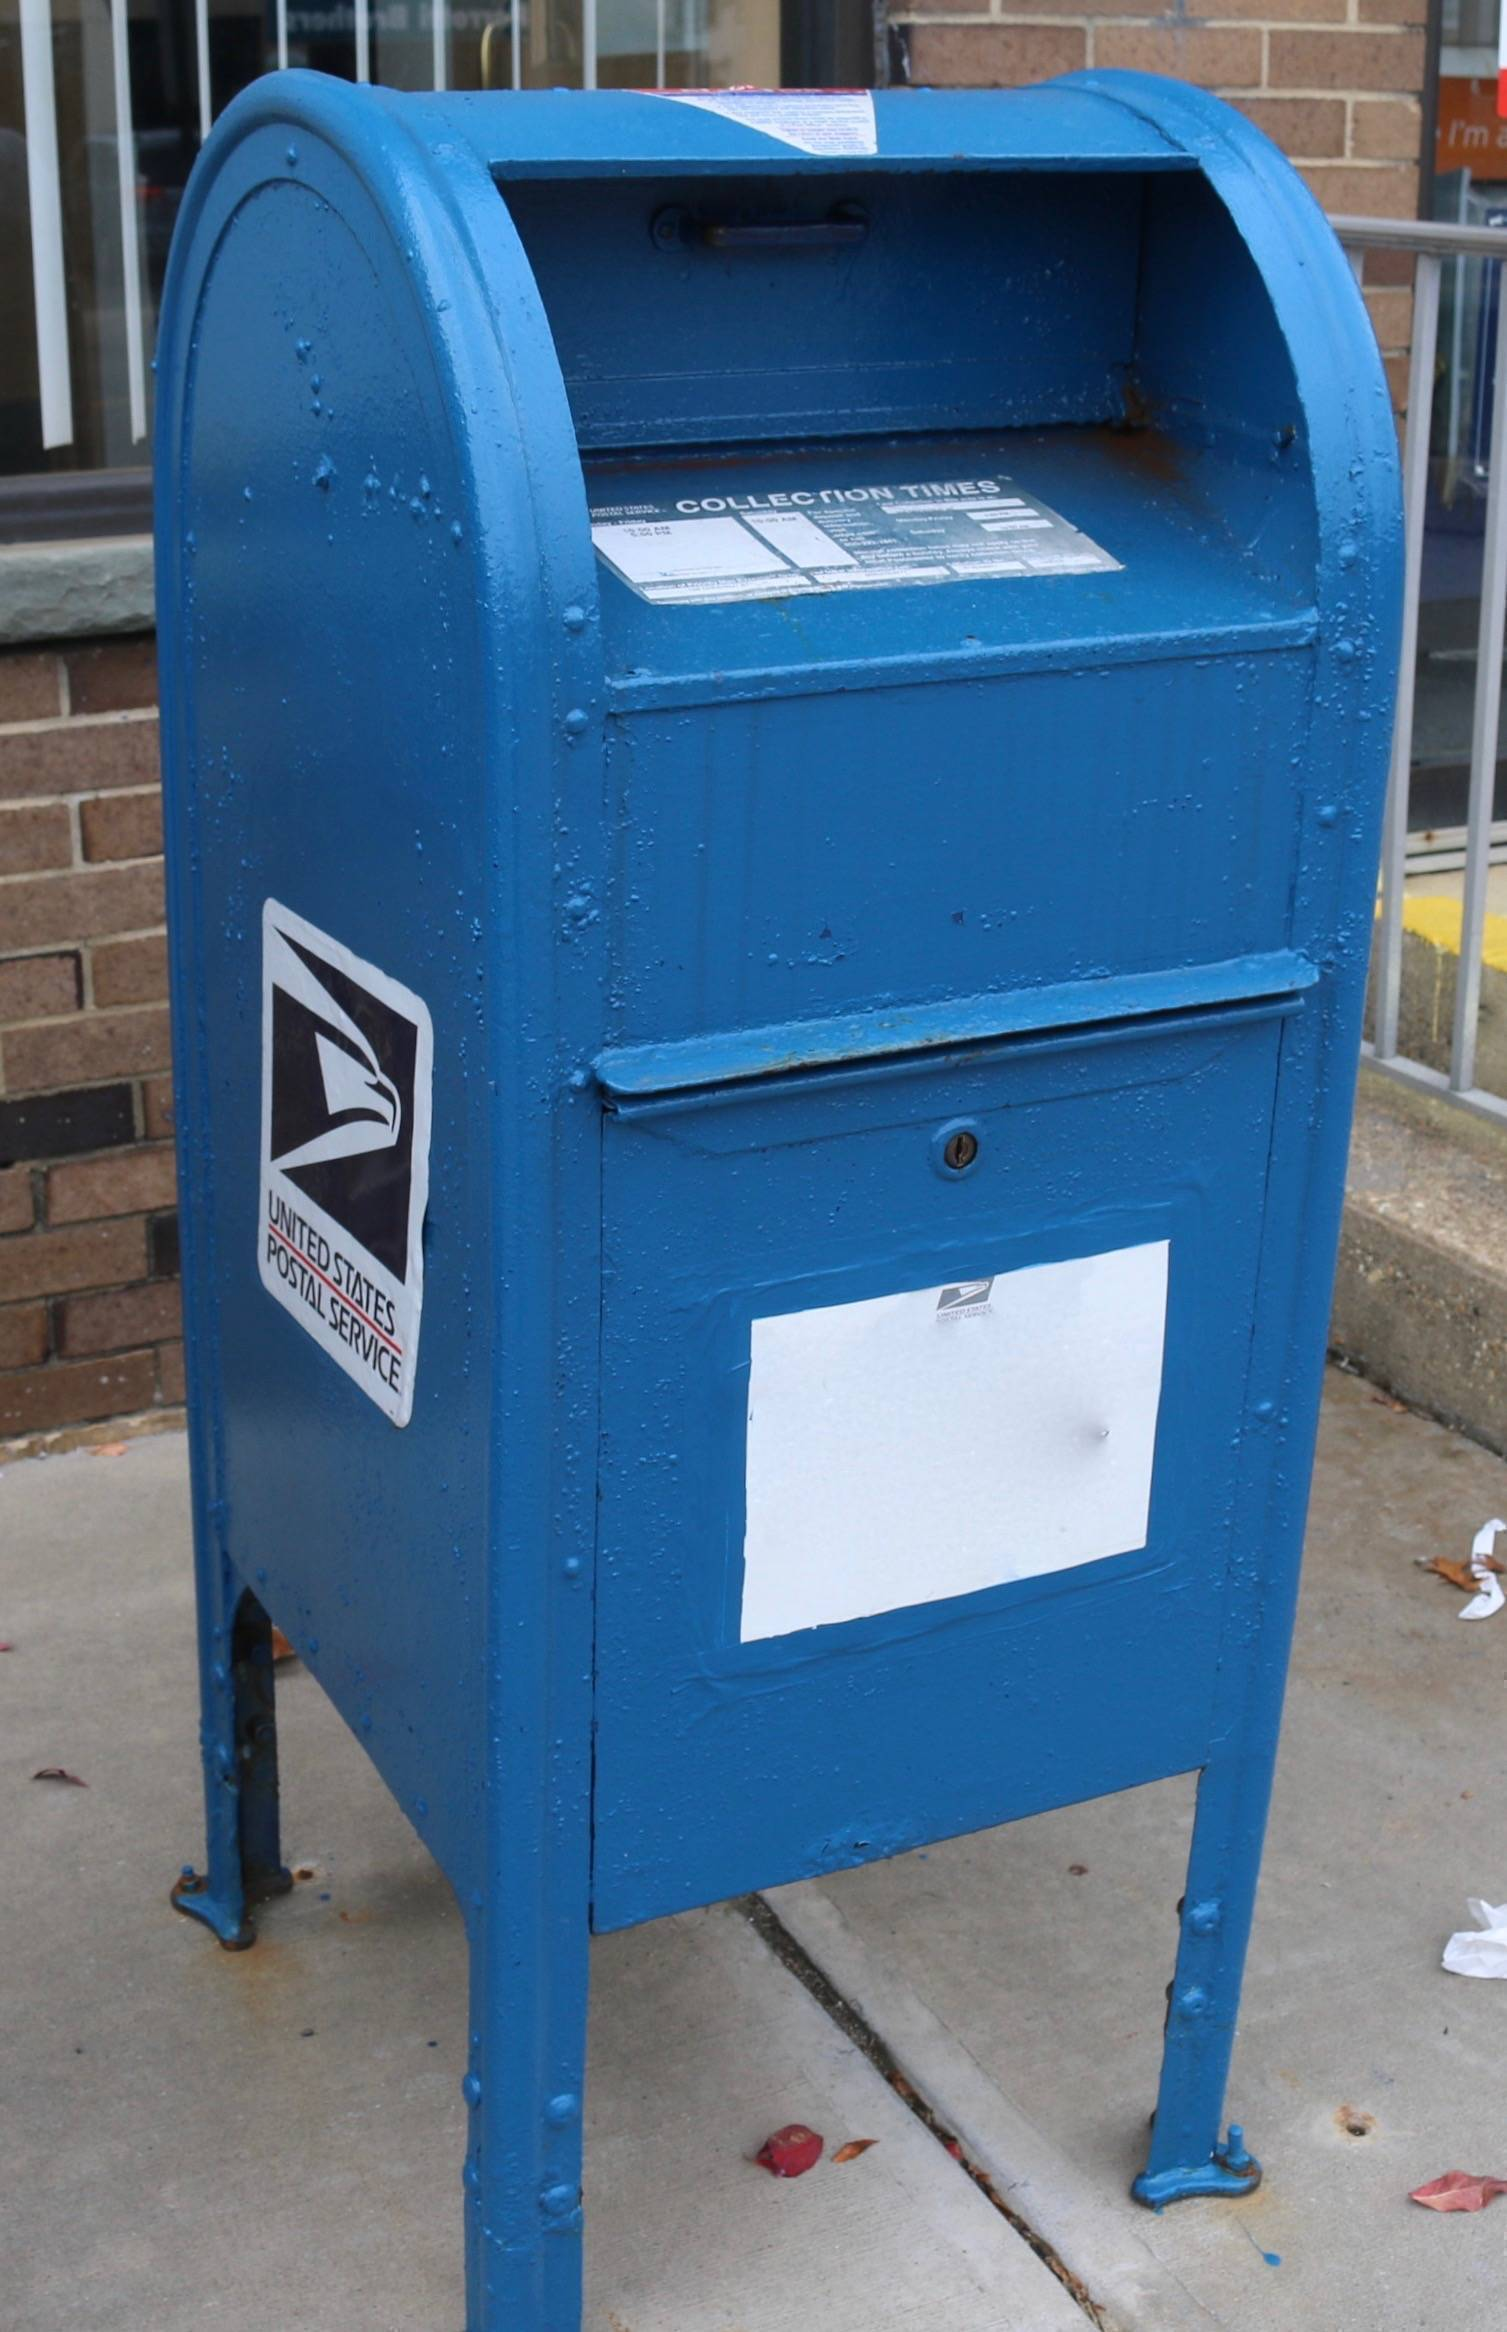 USPS® Suspends Regular Mail Delivery for National Day of Mourning on Dec. 5